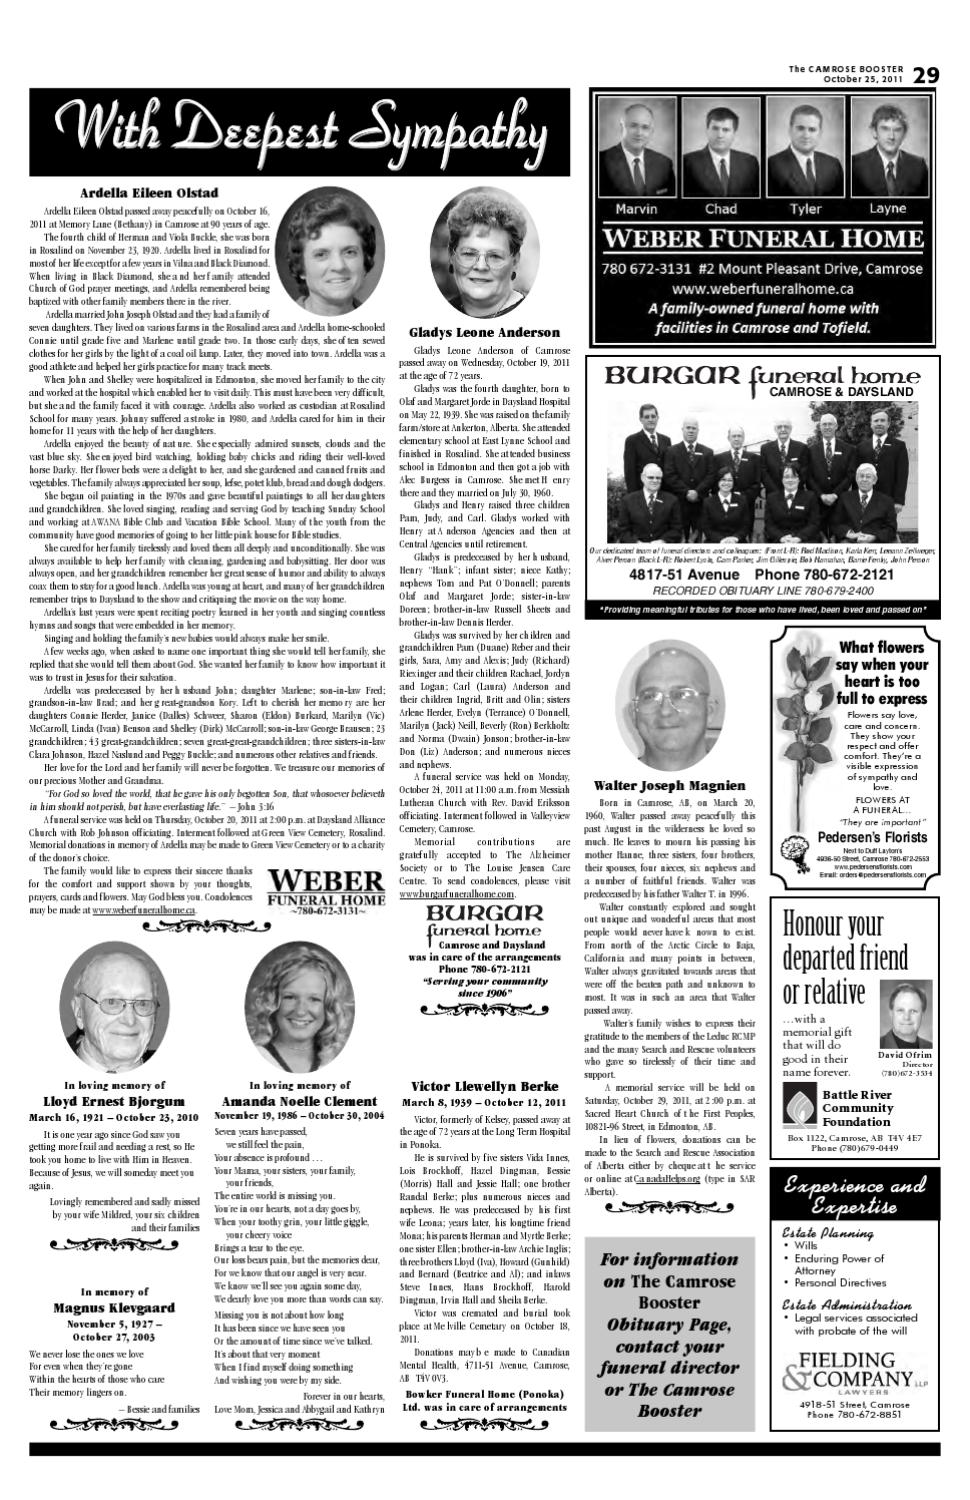 The Camrose Booster, October 25, 2011 by The Camrose Booster